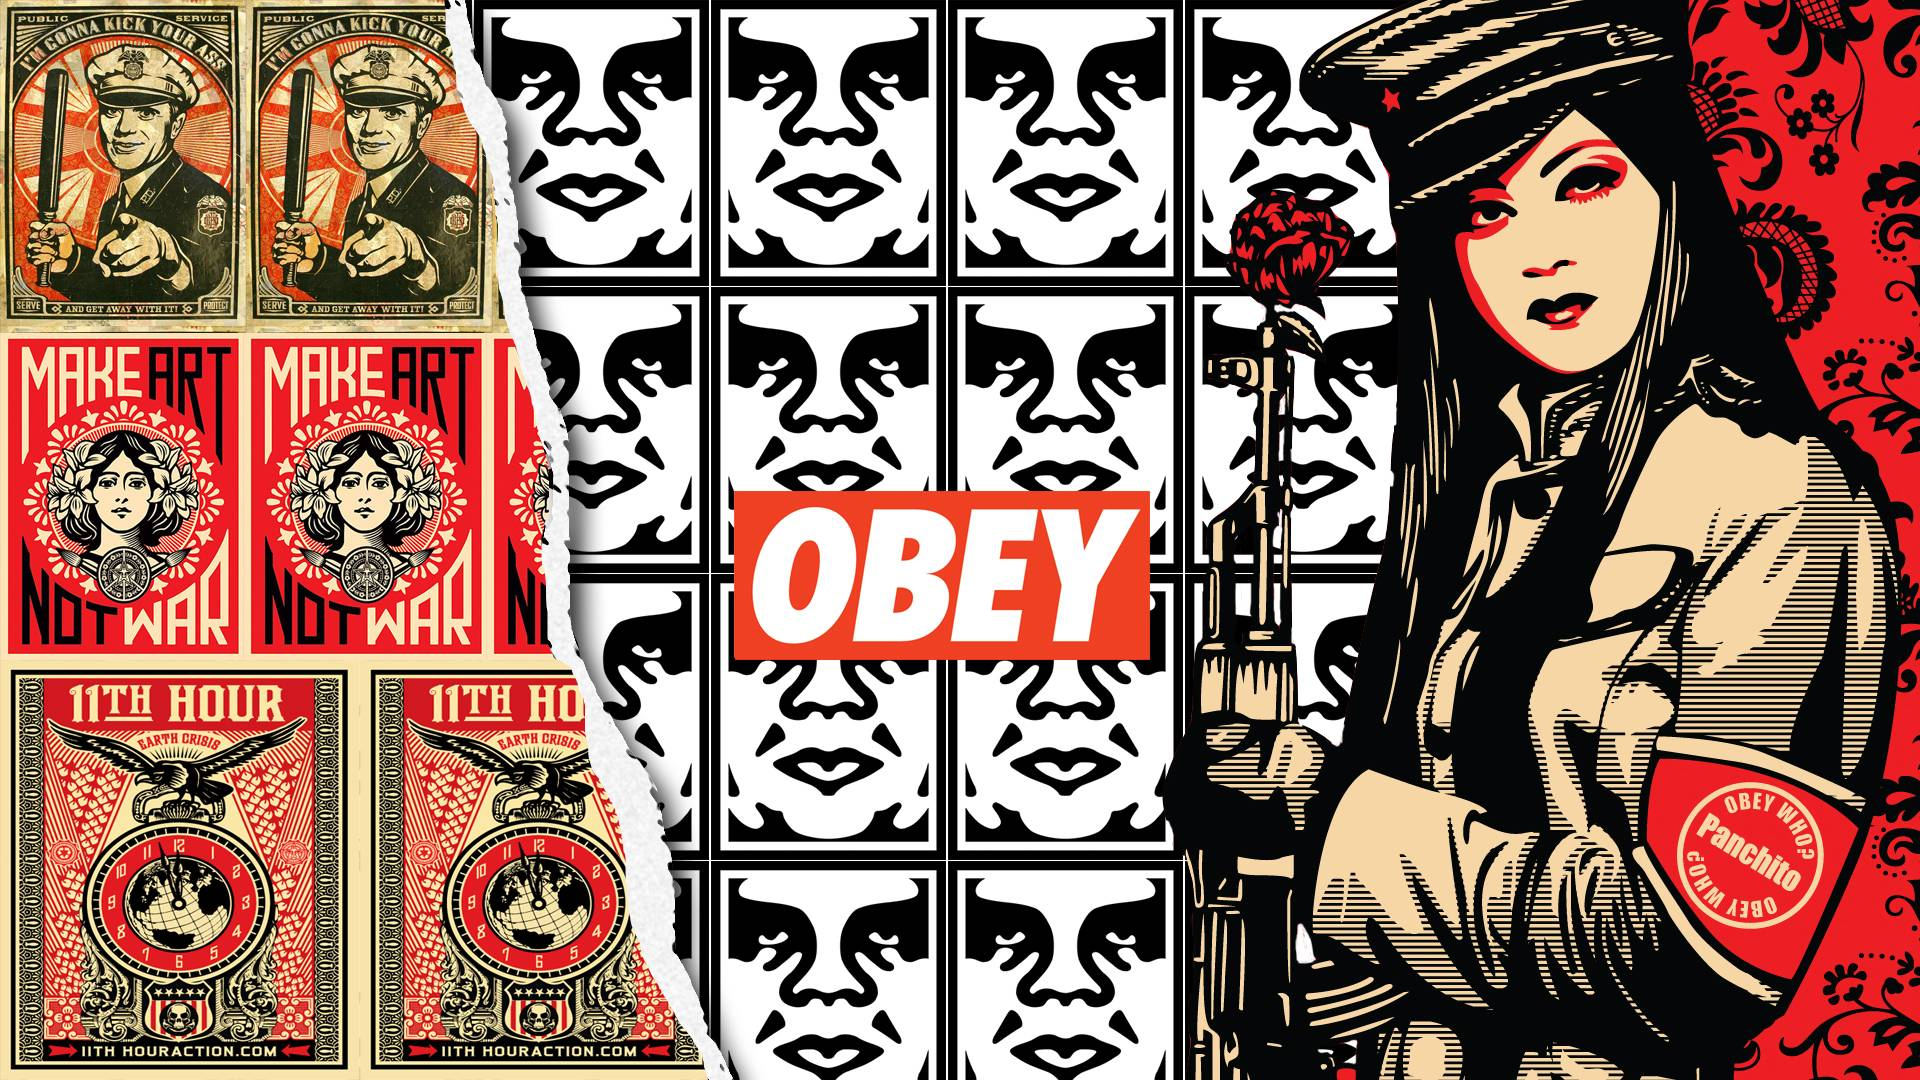 obey cool wallpapers 1920 - photo #2